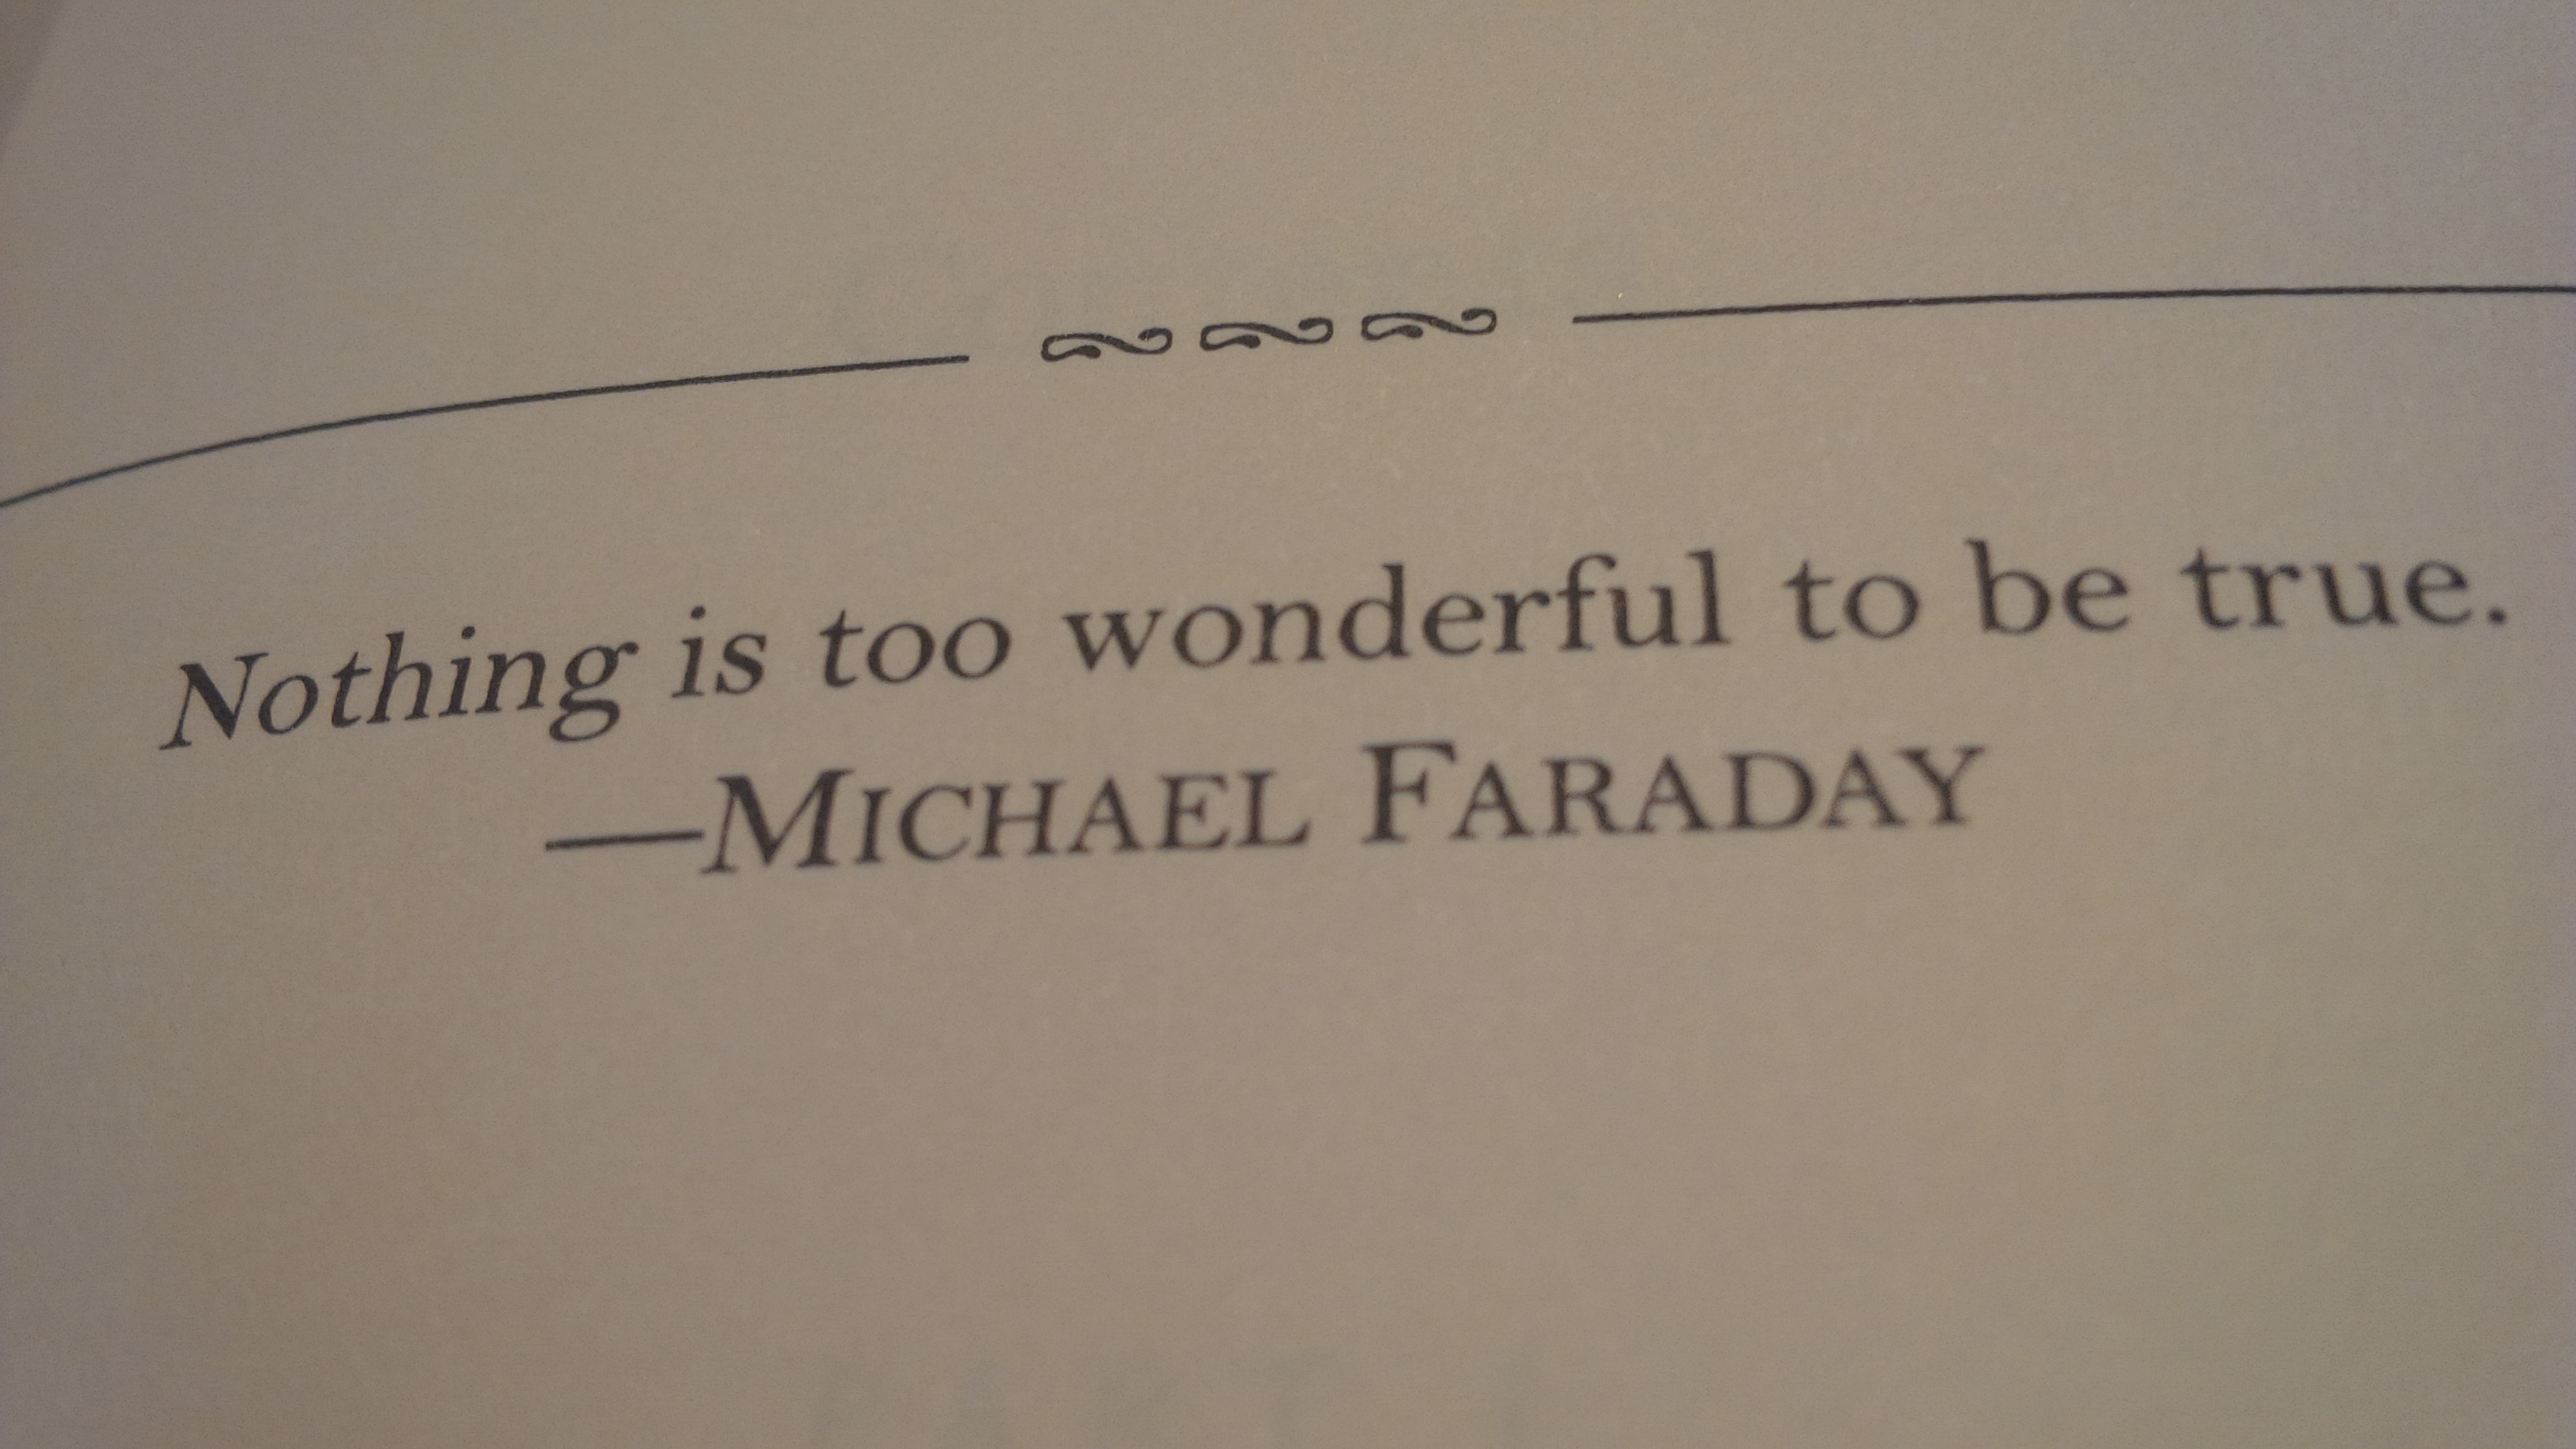 KBrunini, Michael Faraday, Martin Luther King, Michael Faraday, Wisdom